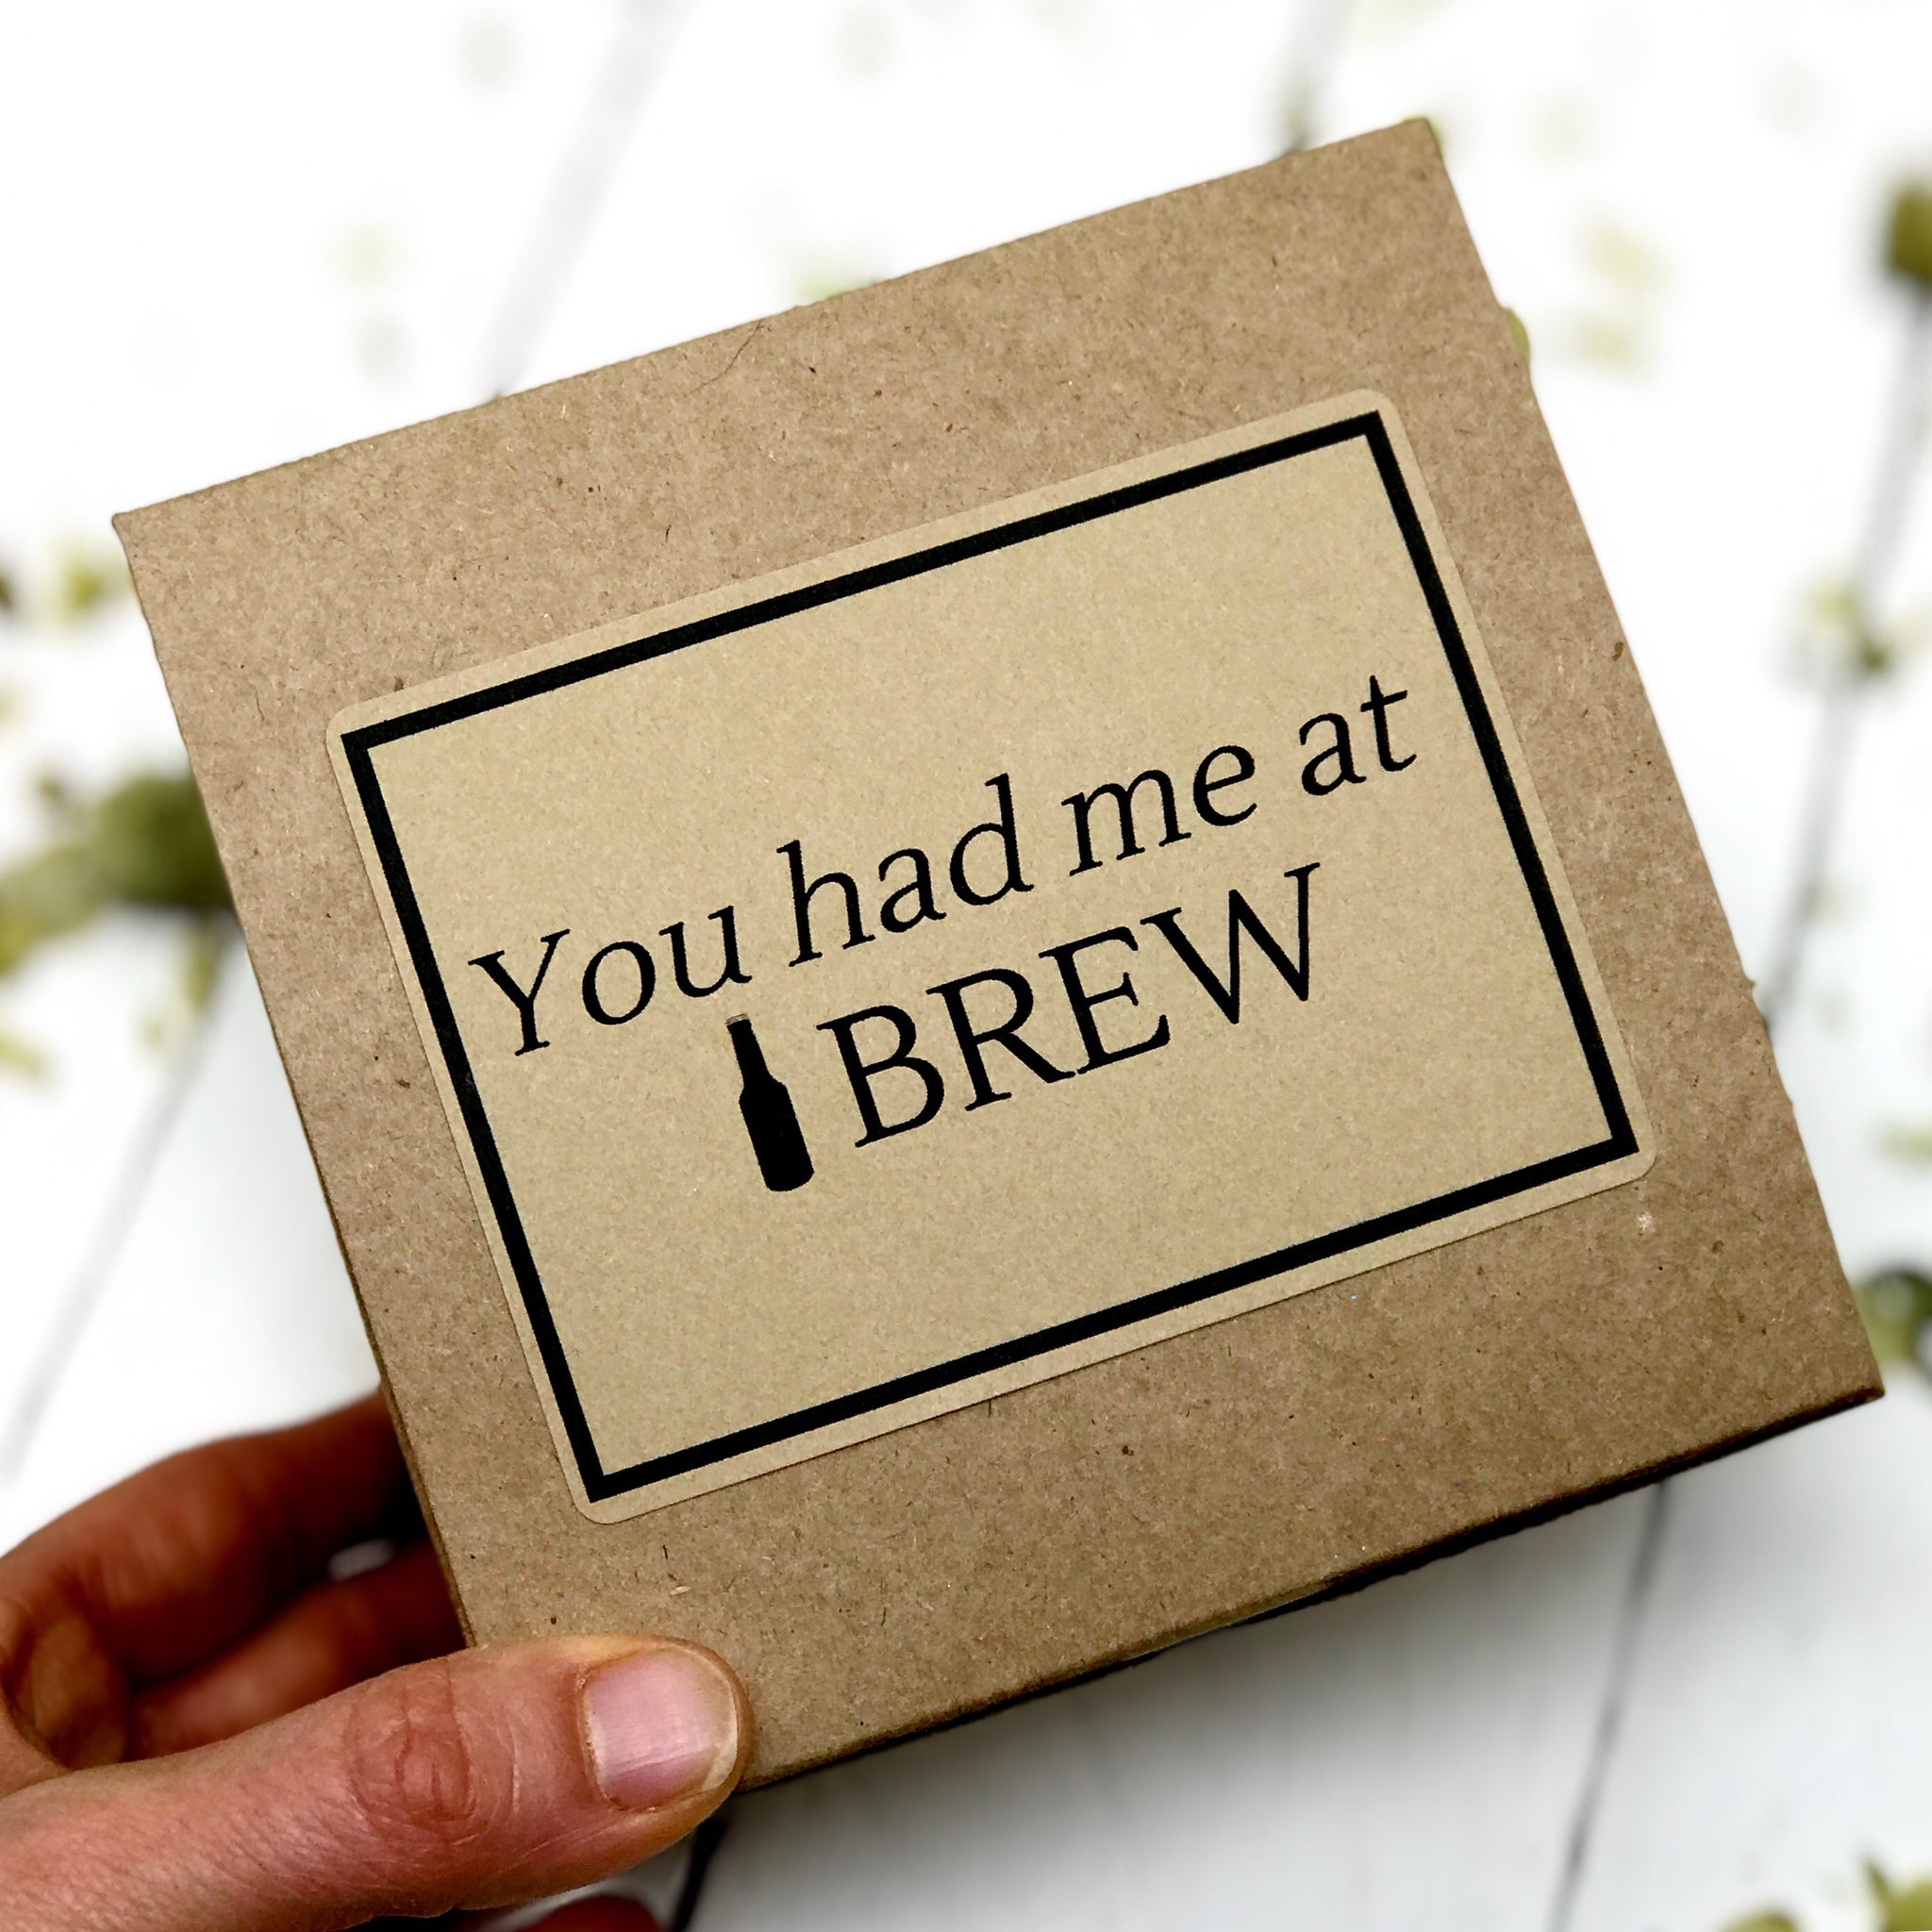 Beer Scented Soap Gifts for Him|Boyfriend Gifts|Man Cave|Roommate Gifts|Novelty Soap|Guy Gifts|BFF Gifts|Gifts for Brother|